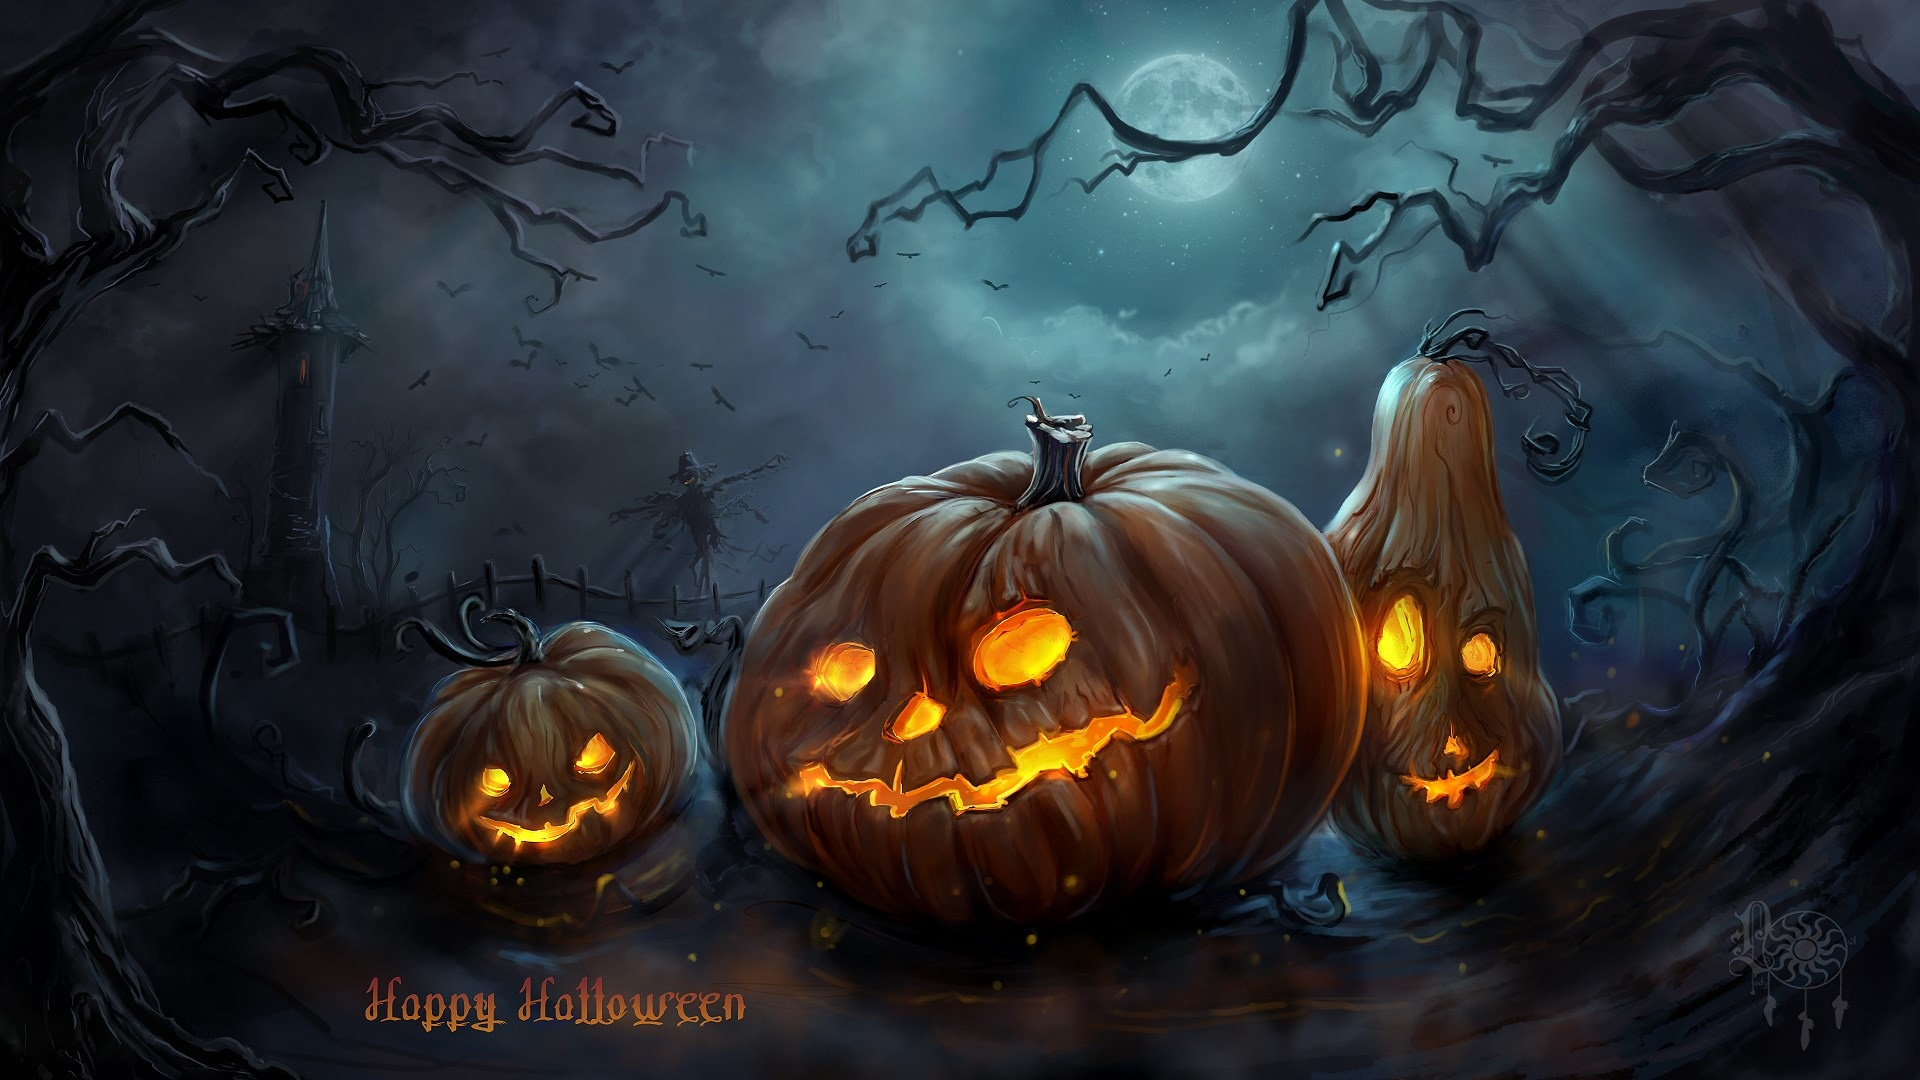 Scary Halloween  HD Wallpapers  Pumpkins, Witches, Spider Web 1920x1080